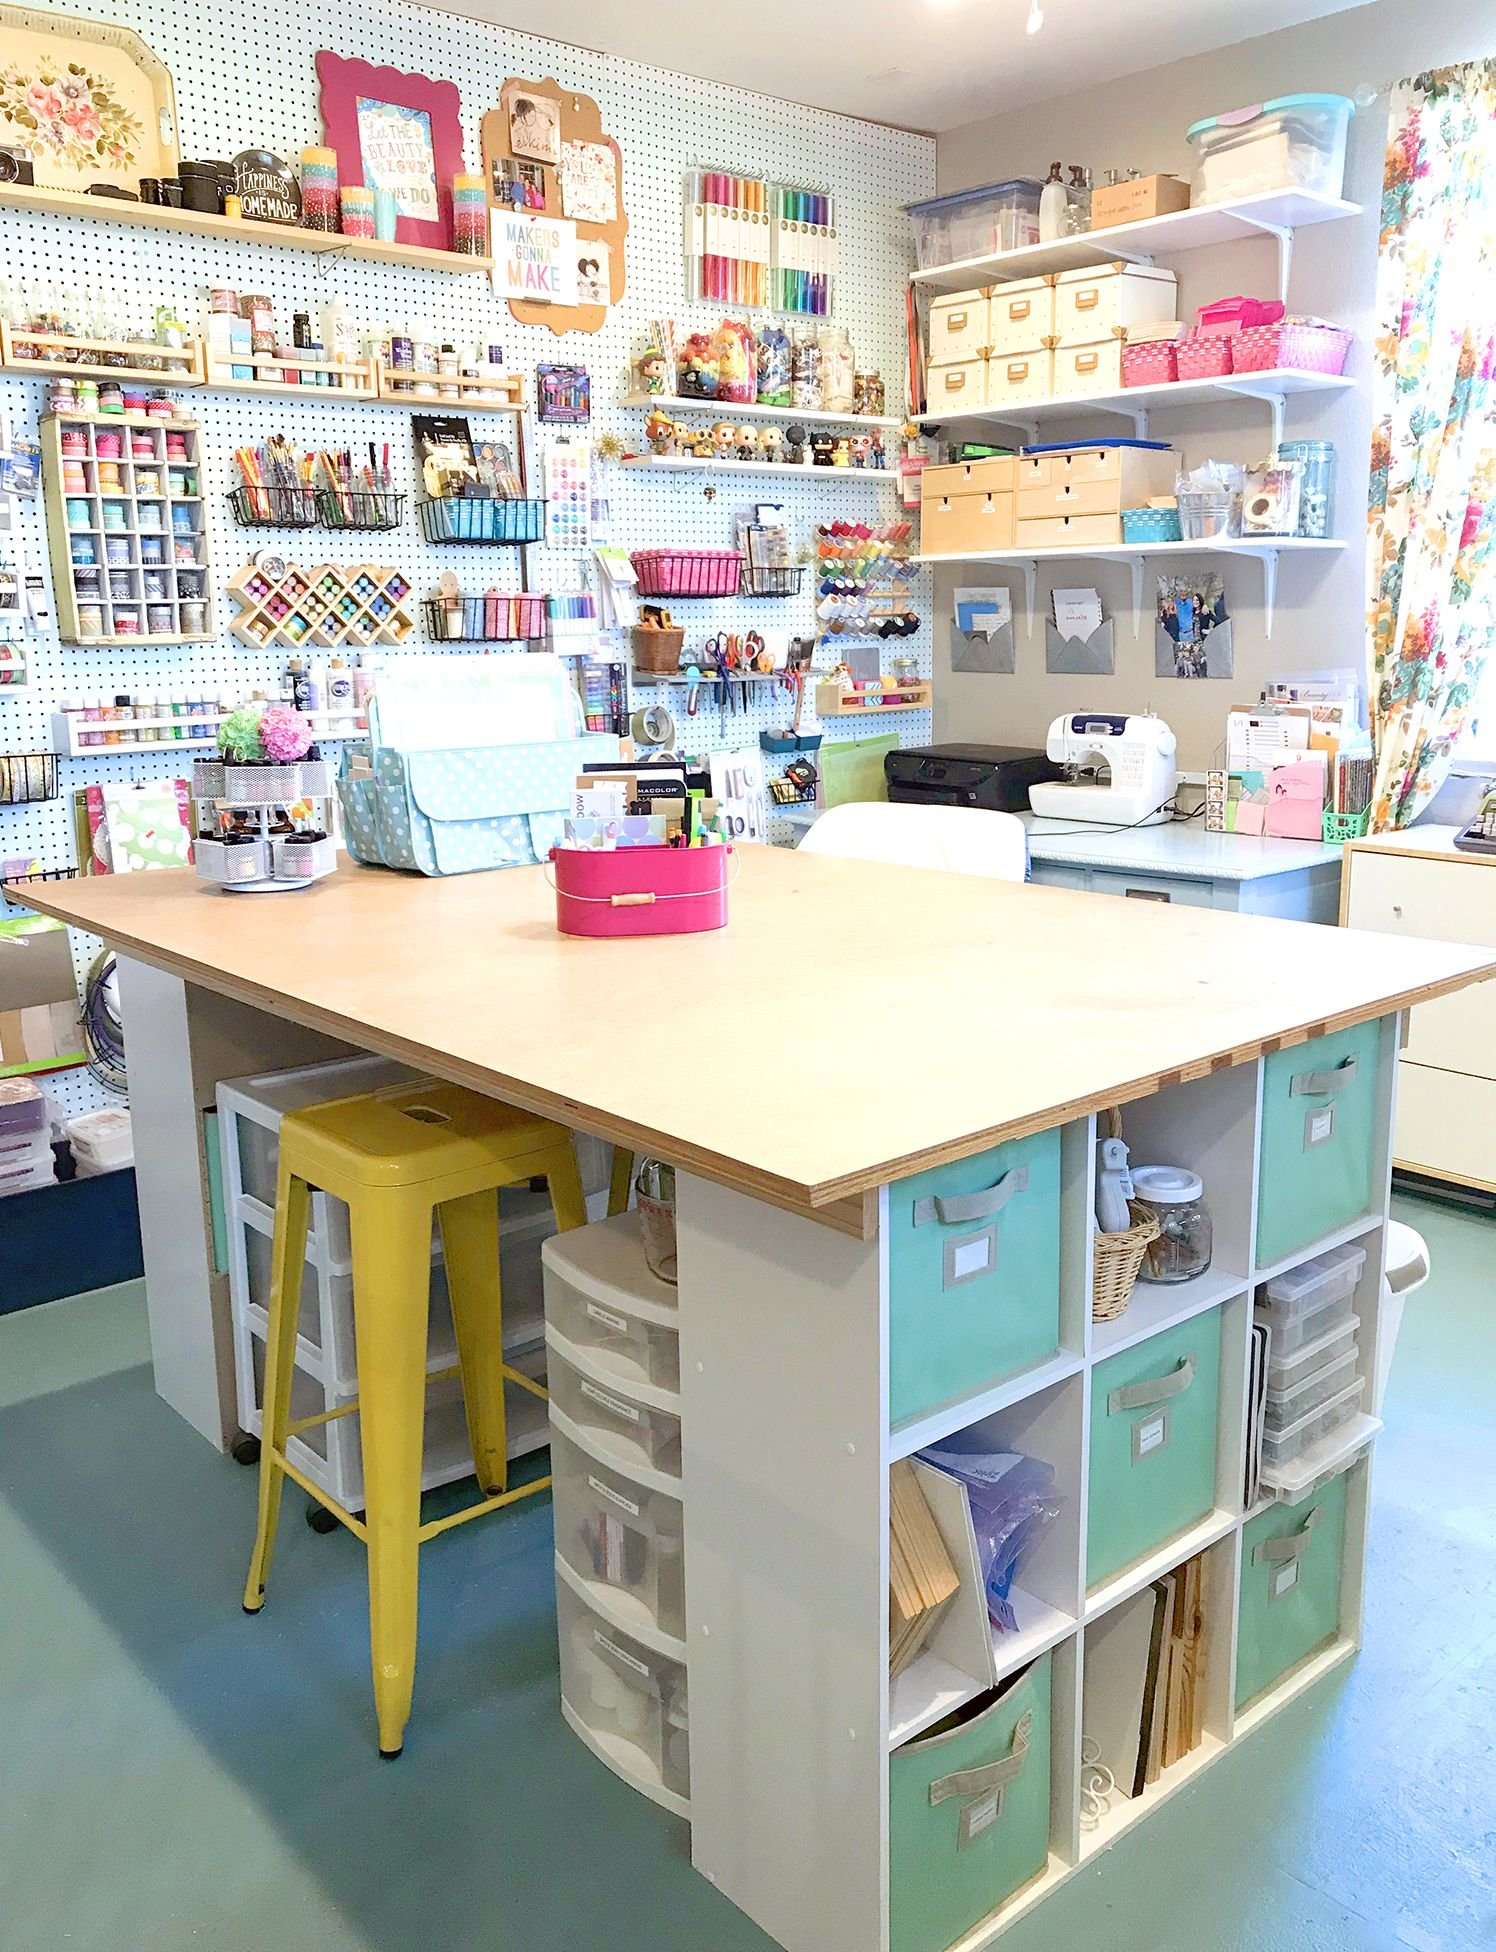 Looking For Craft Room Ideas Come Tour My Craft Room And Take A Peek At Lots Of Awesome And Colorful C Sewing Room Design Small Craft Rooms Craft Room Storage